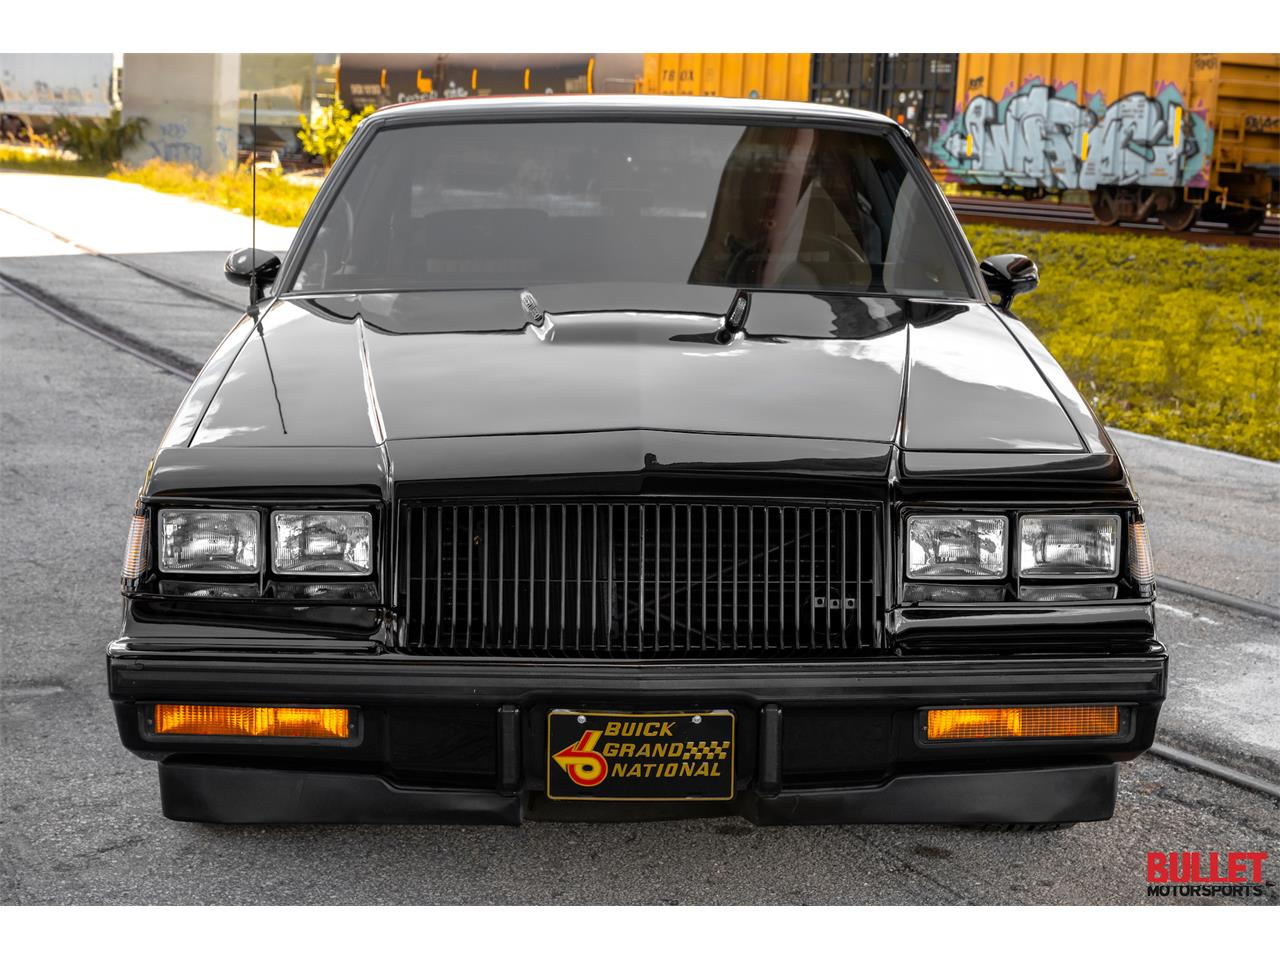 Large Picture of '87 Buick Grand National Offered by Bullet Motorsports Inc - PSK7